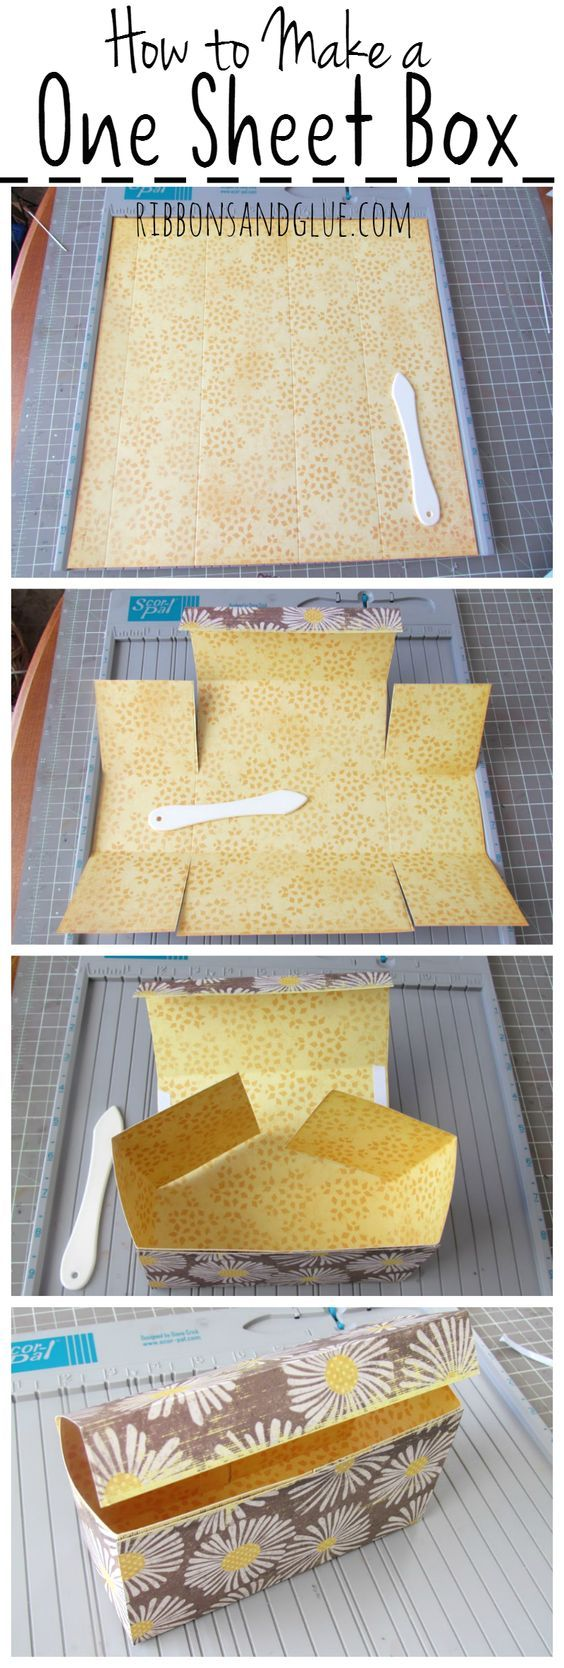 Follow this Easy Box Tutorial made out of one sheet of 12 x 12 Scrapbook Paper. This perfect size treat box can easily hold a small gifts or homemade treats. Printable step by step instructions included too.: